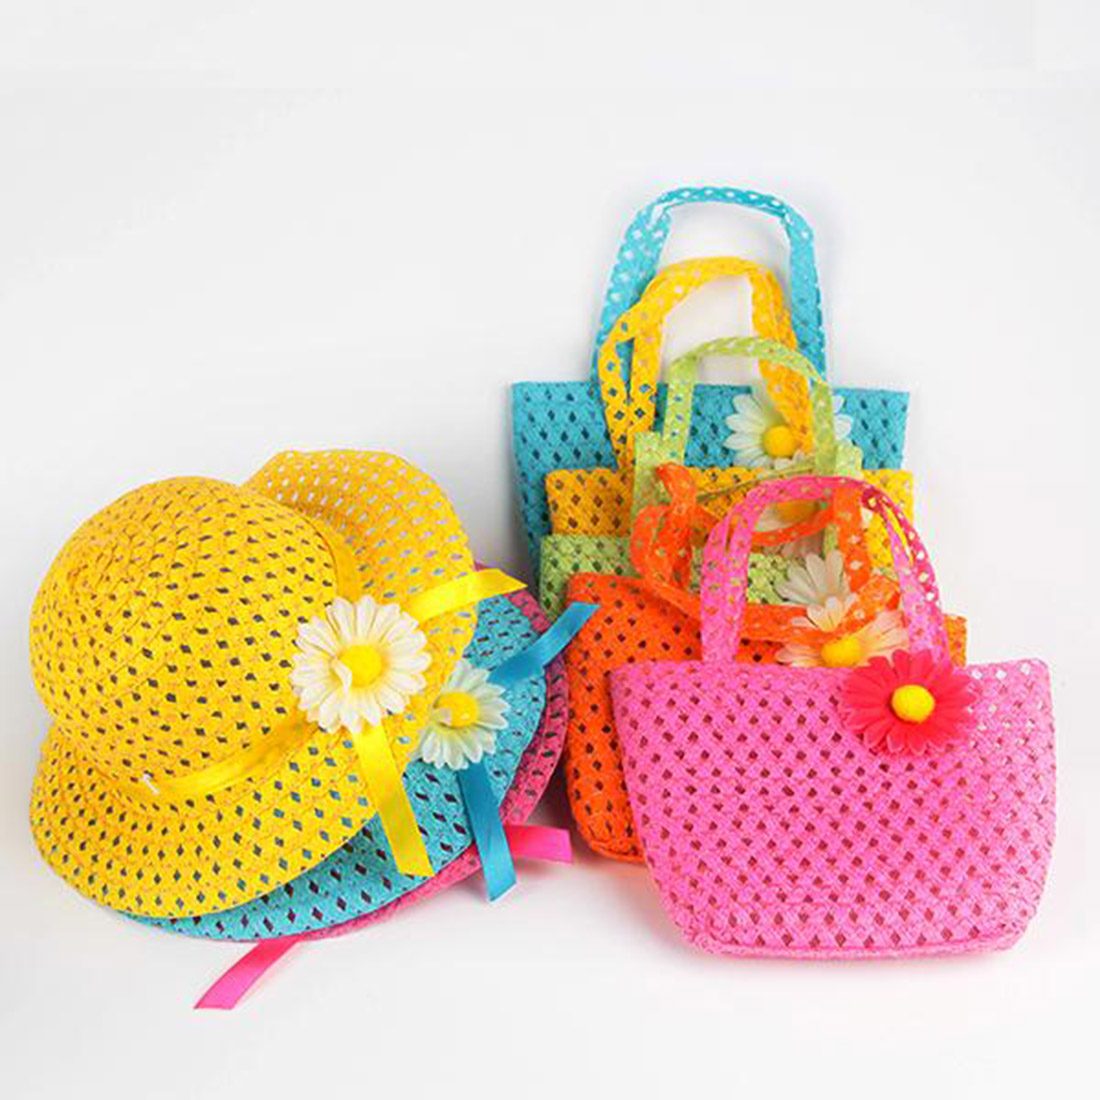 Summer Sun Hat Girls Kids Children Beach Hats Bags Flower Straw Hat Cap Tote Handbag Bag Suit 9 Colors(China (Mainland))